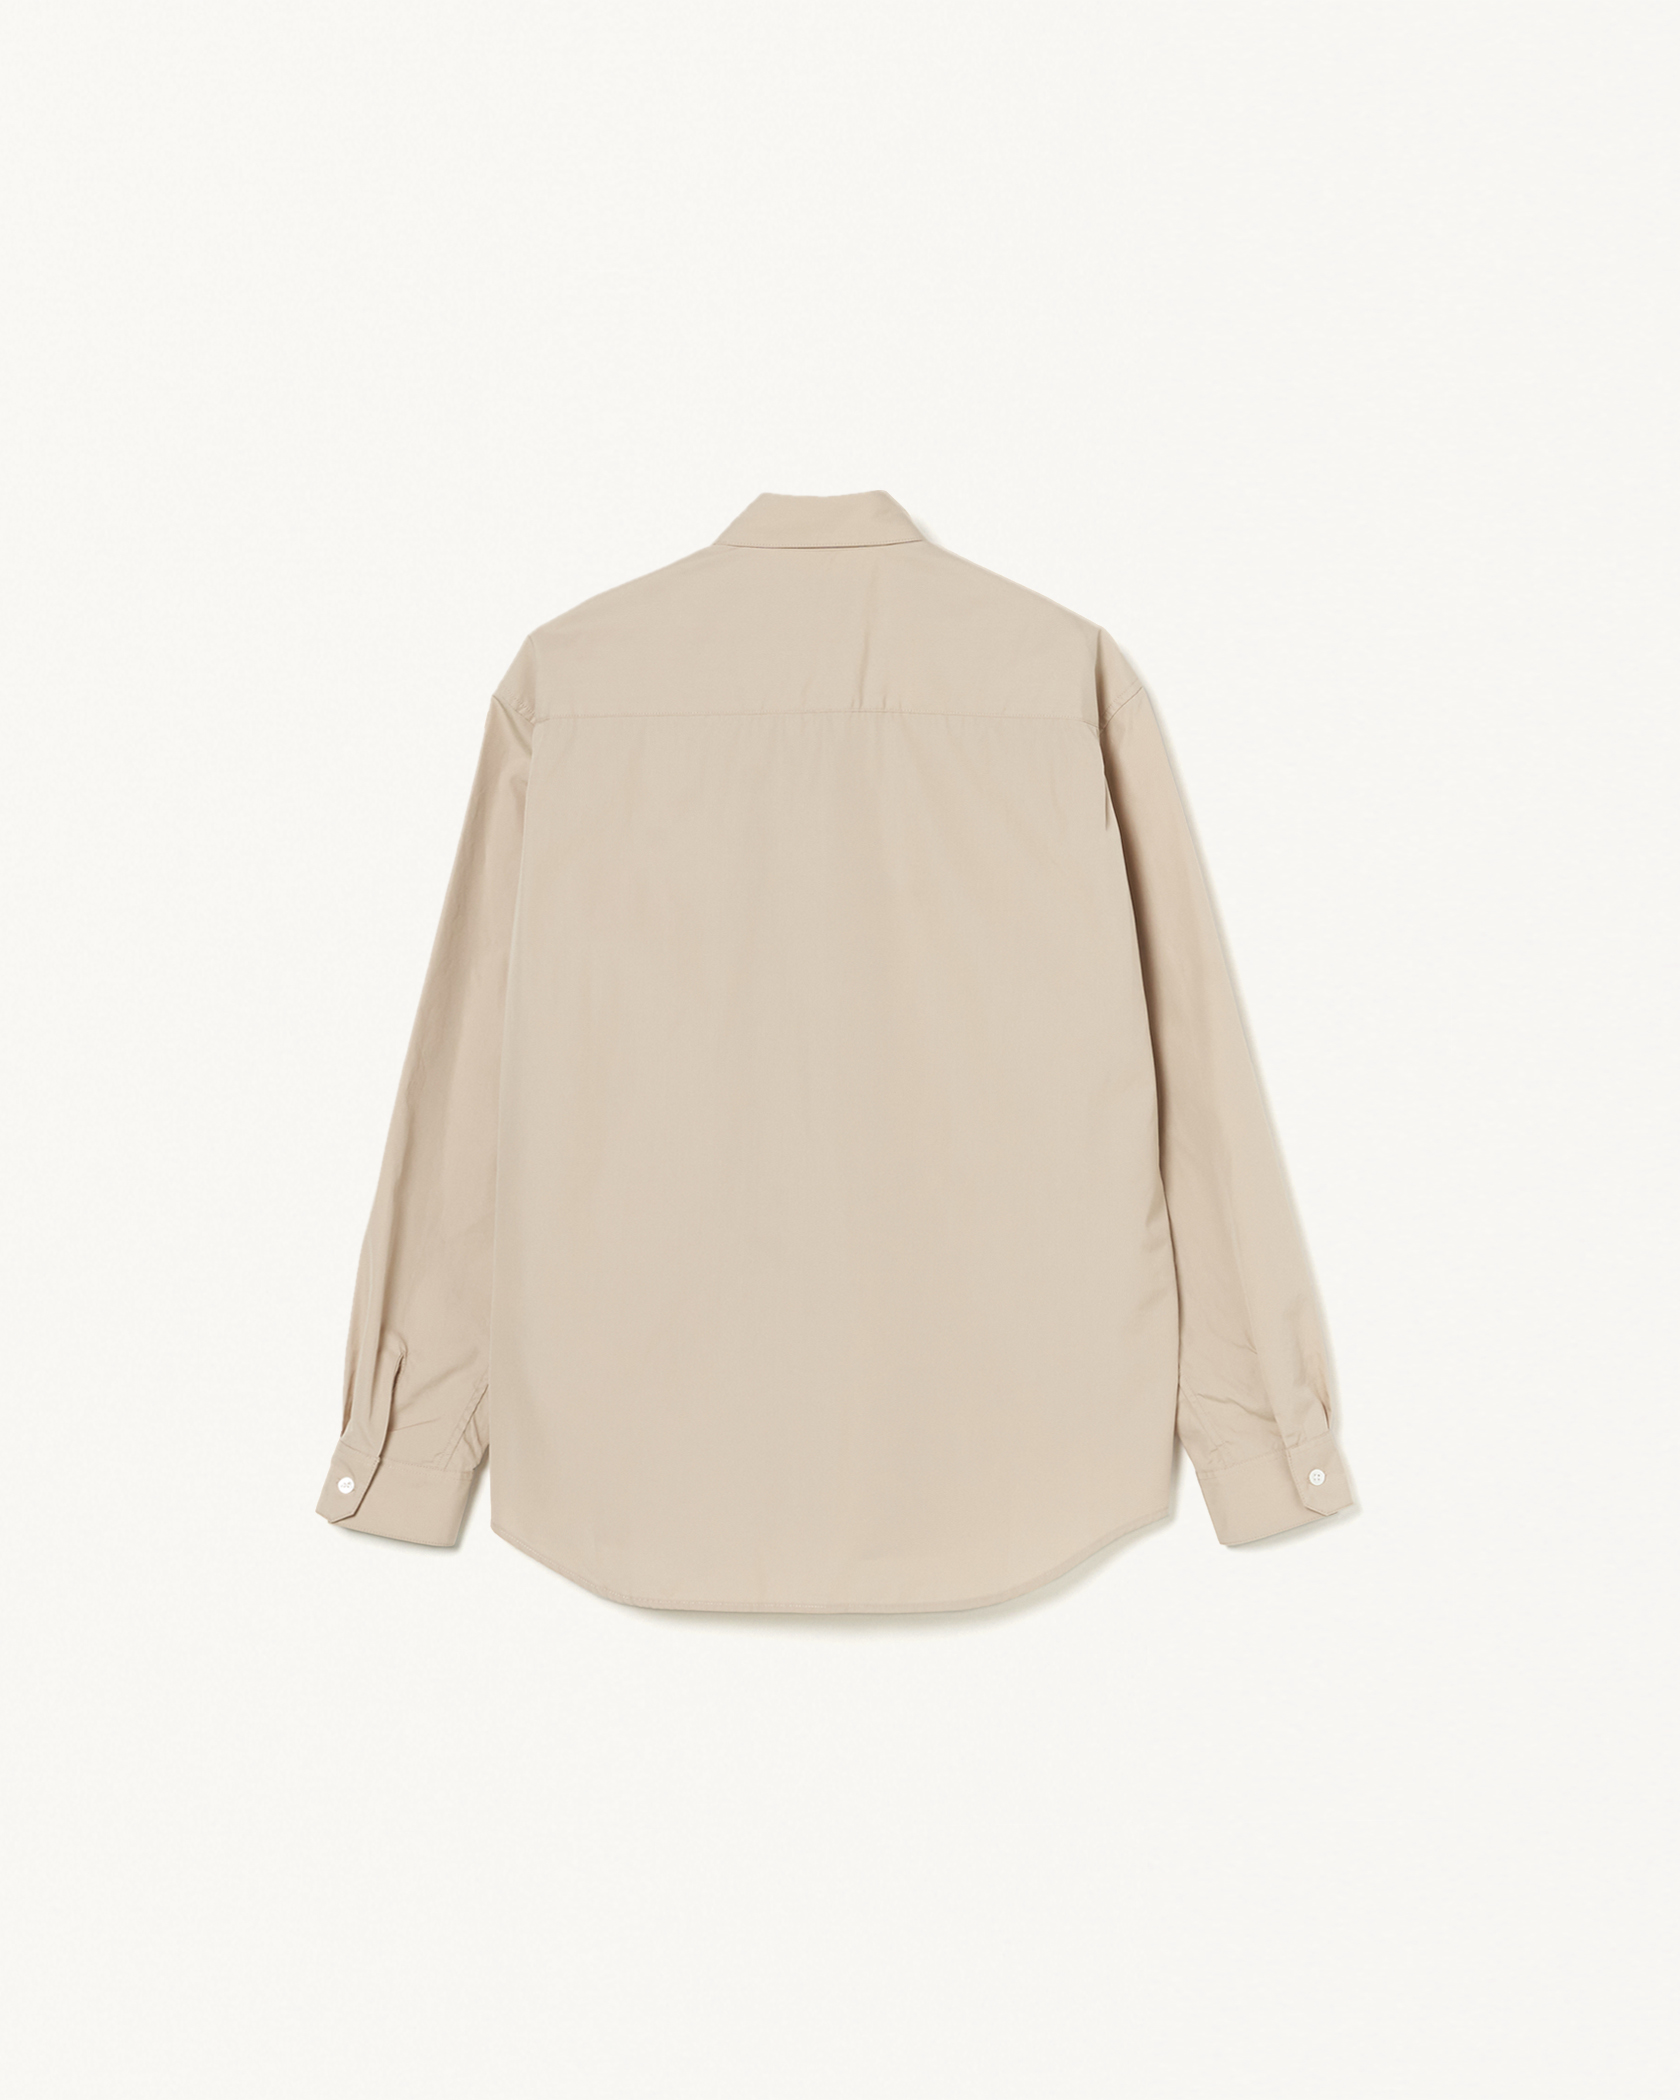 THOMAS BROAD SHIRT 詳細画像 Beige 9